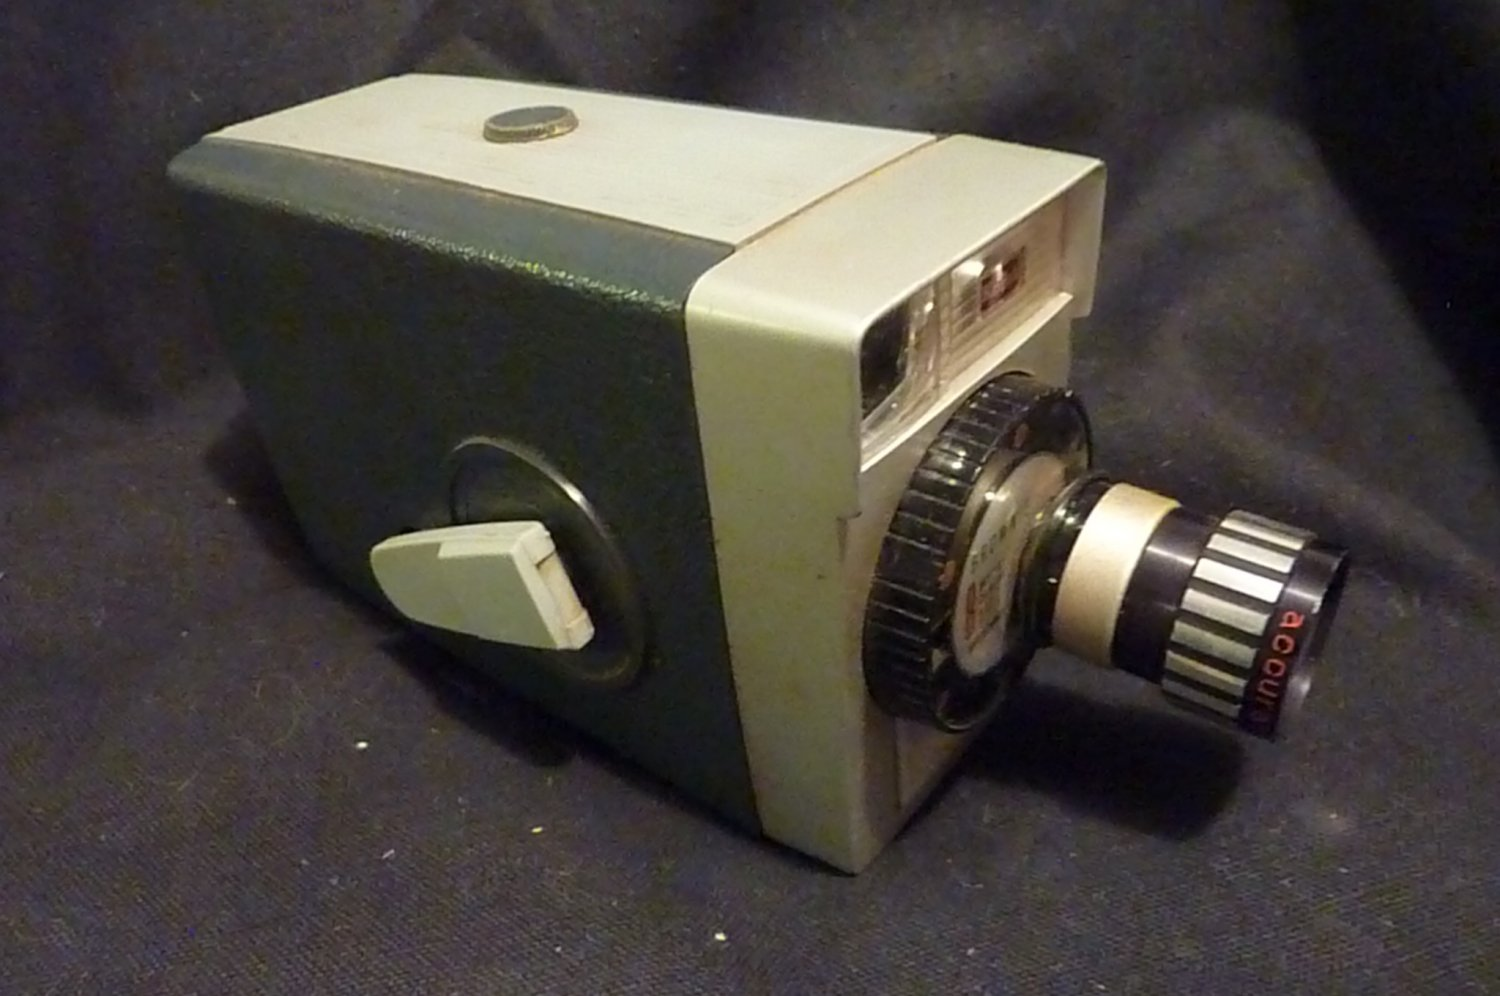 VINTAGE KODAK BROWNIE 8 MOVIE CAMERA WITH TELEPHOTO LENS